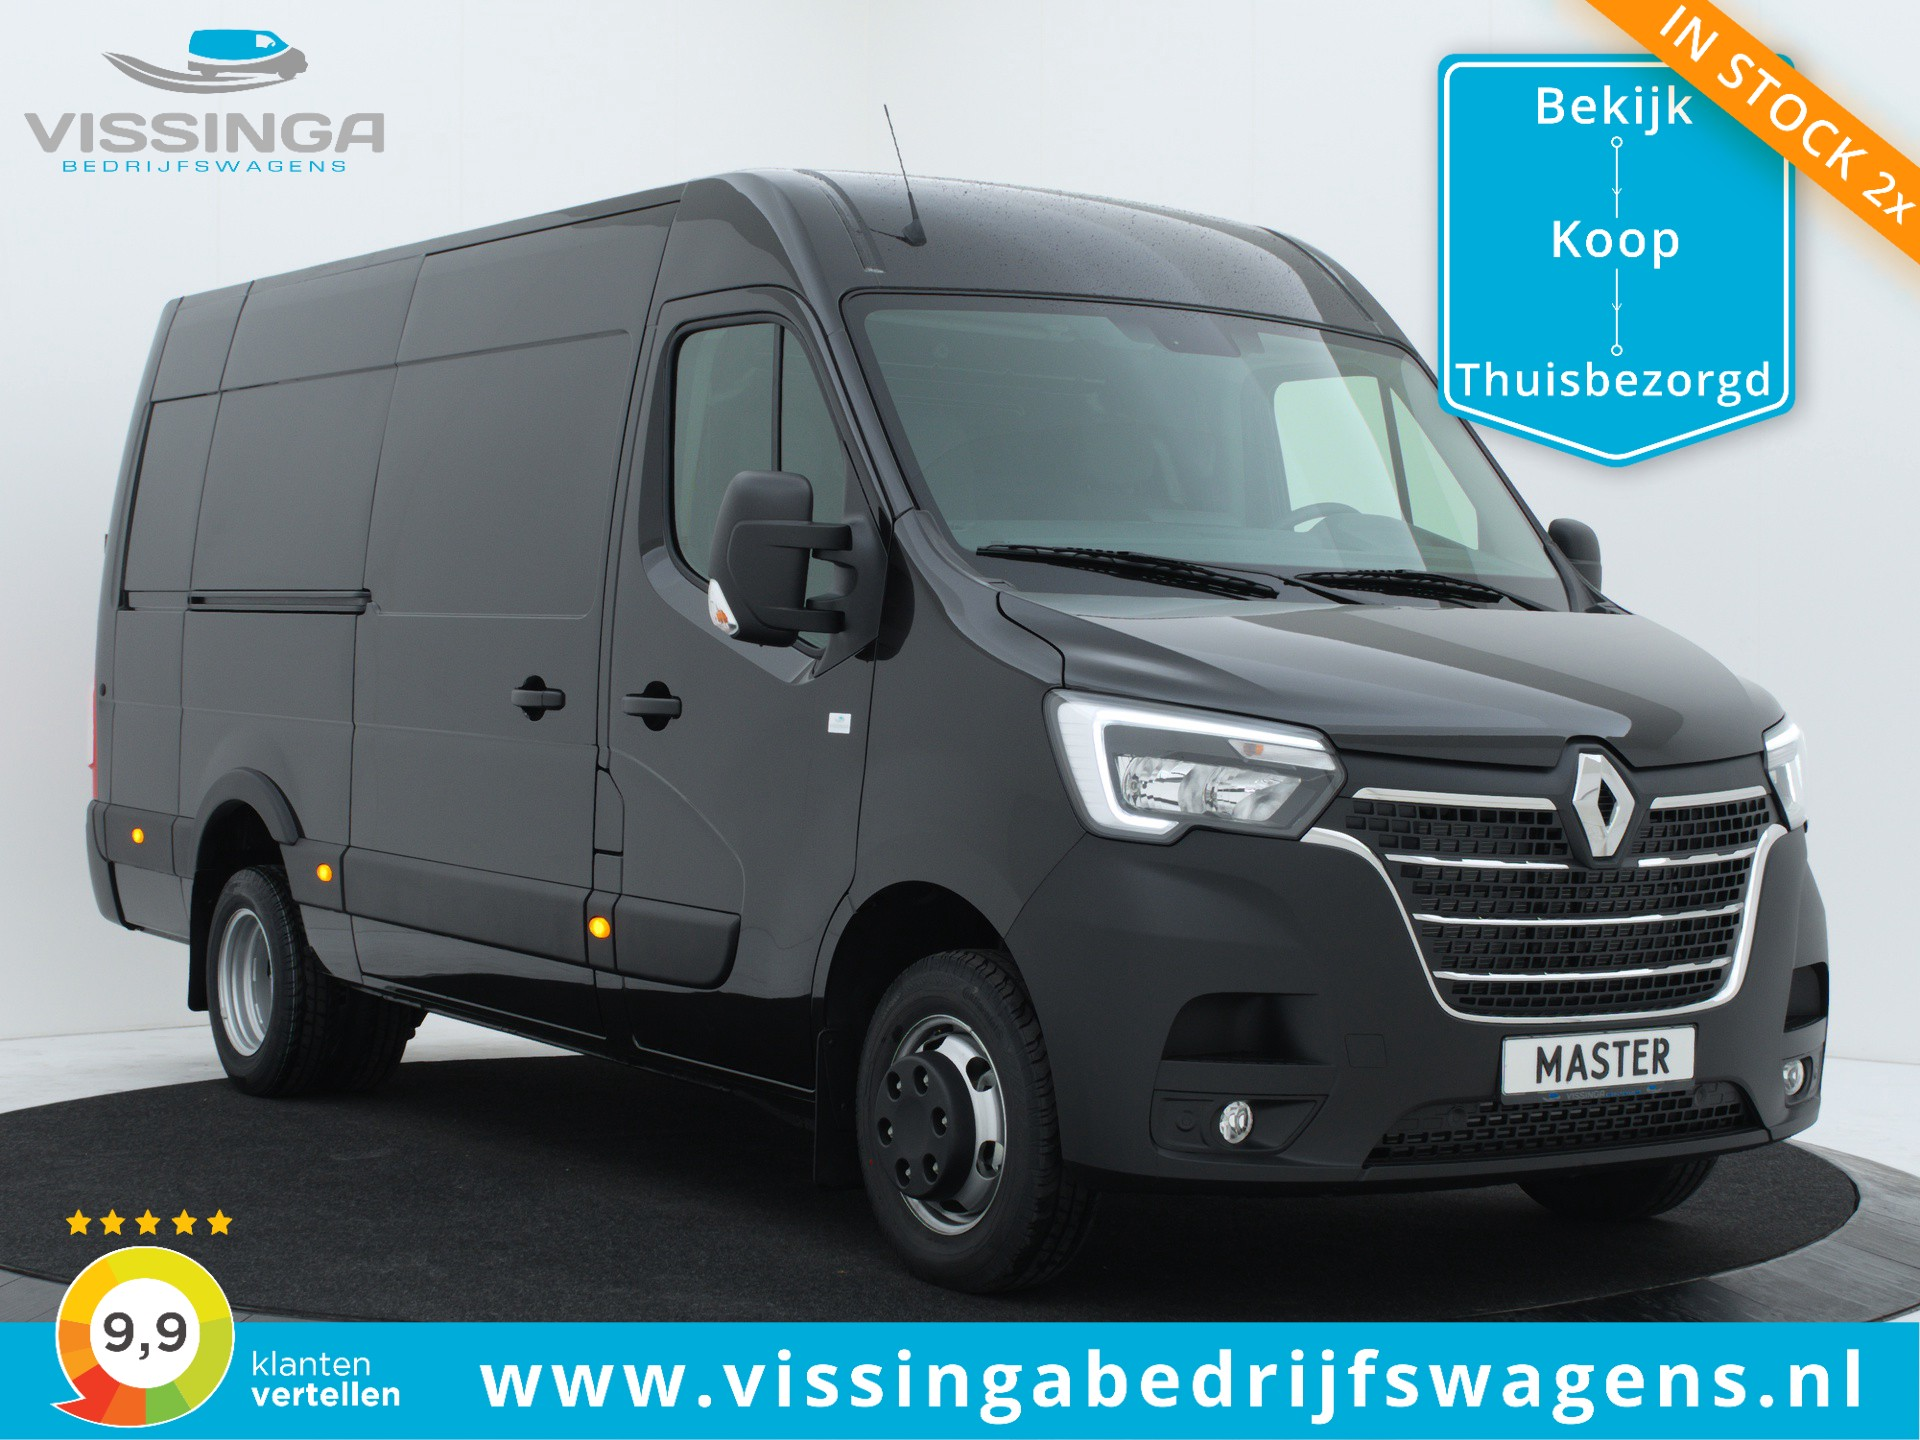 Renault Master T35 2.3 dCi L3H2 165 pk Twin-Turbo Energy